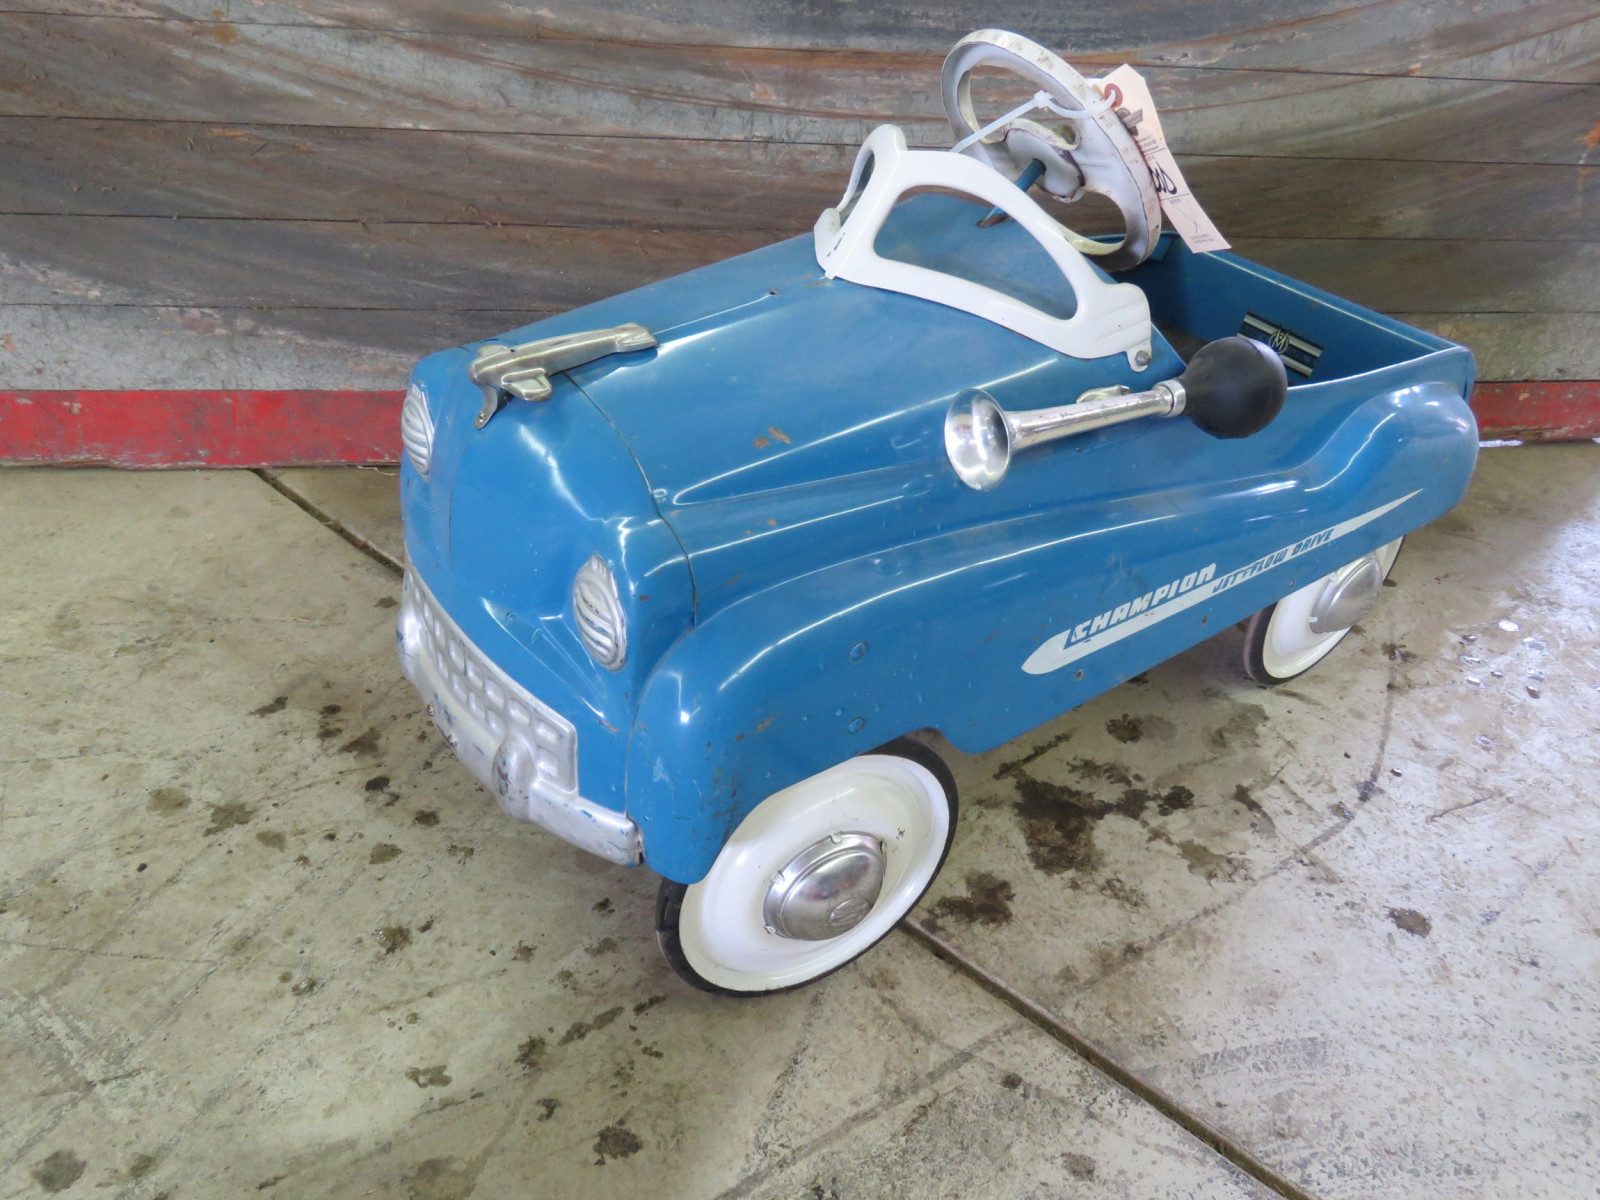 Murray Champion Pedal Car - Image 1